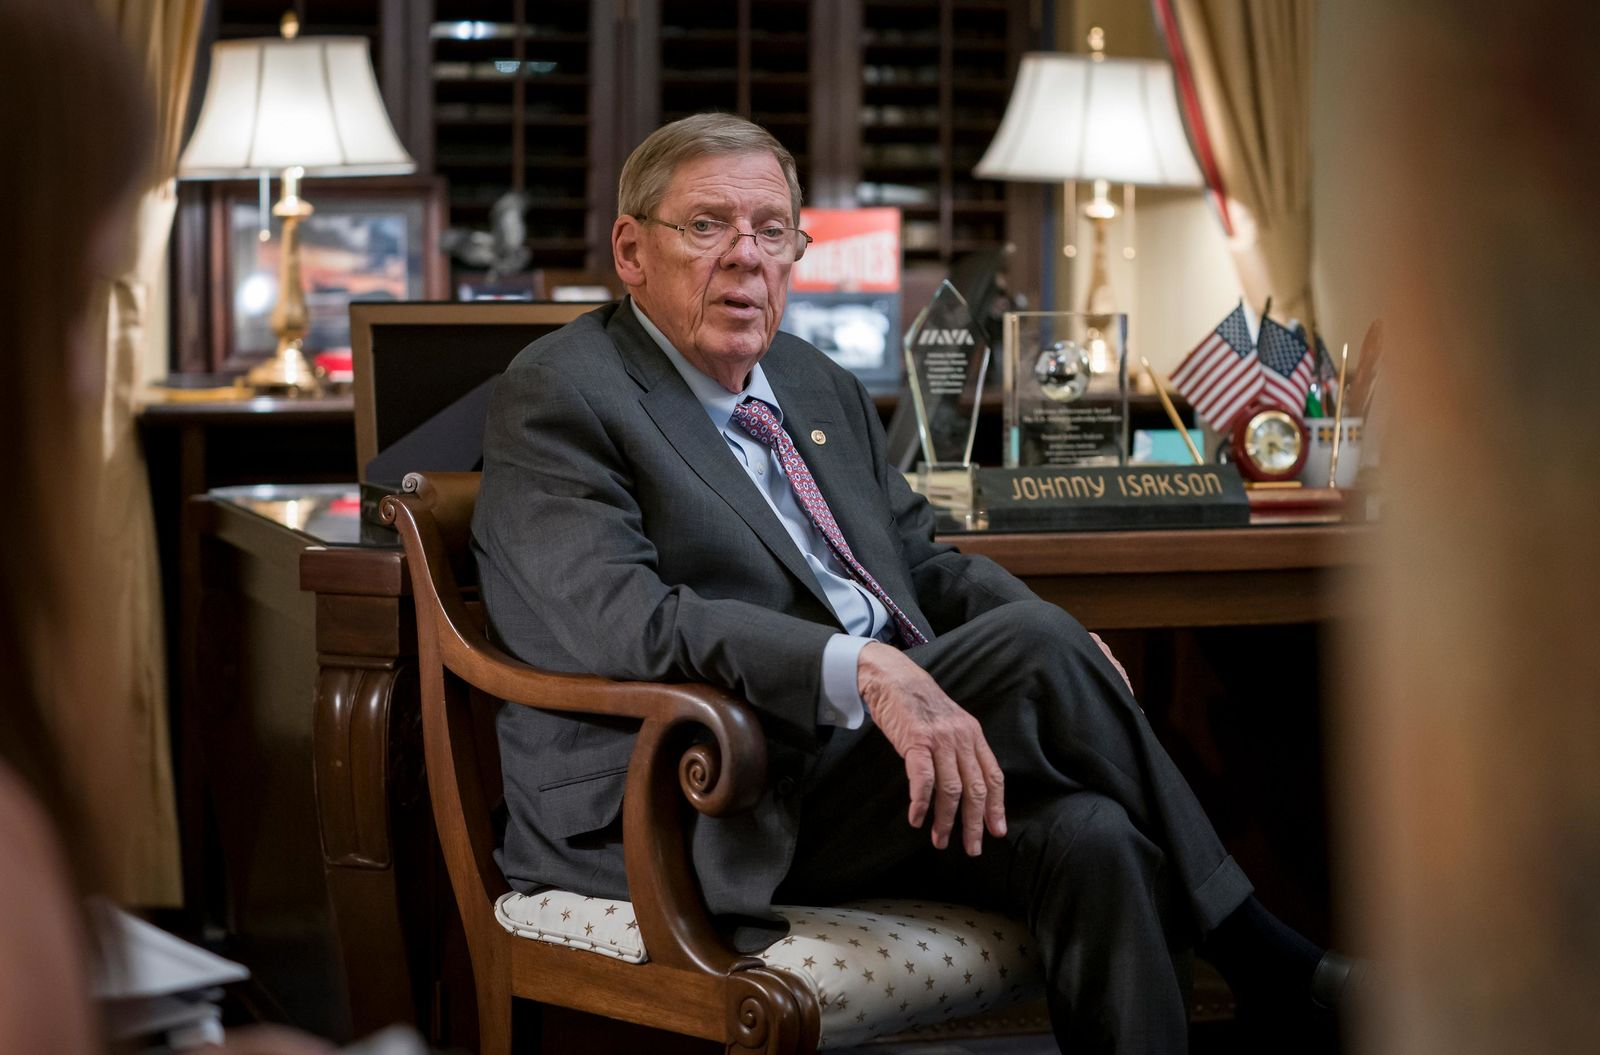 Sen. Johnny Isakson, R-Ga., meets with his staff in his office on Capitol Hill in Washington, Monday, Dec. 2, 2019, as he prepares to deliver his farewell address on the floor of the Senate tomorrow. (AP Photo/J. Scott Applewhite)